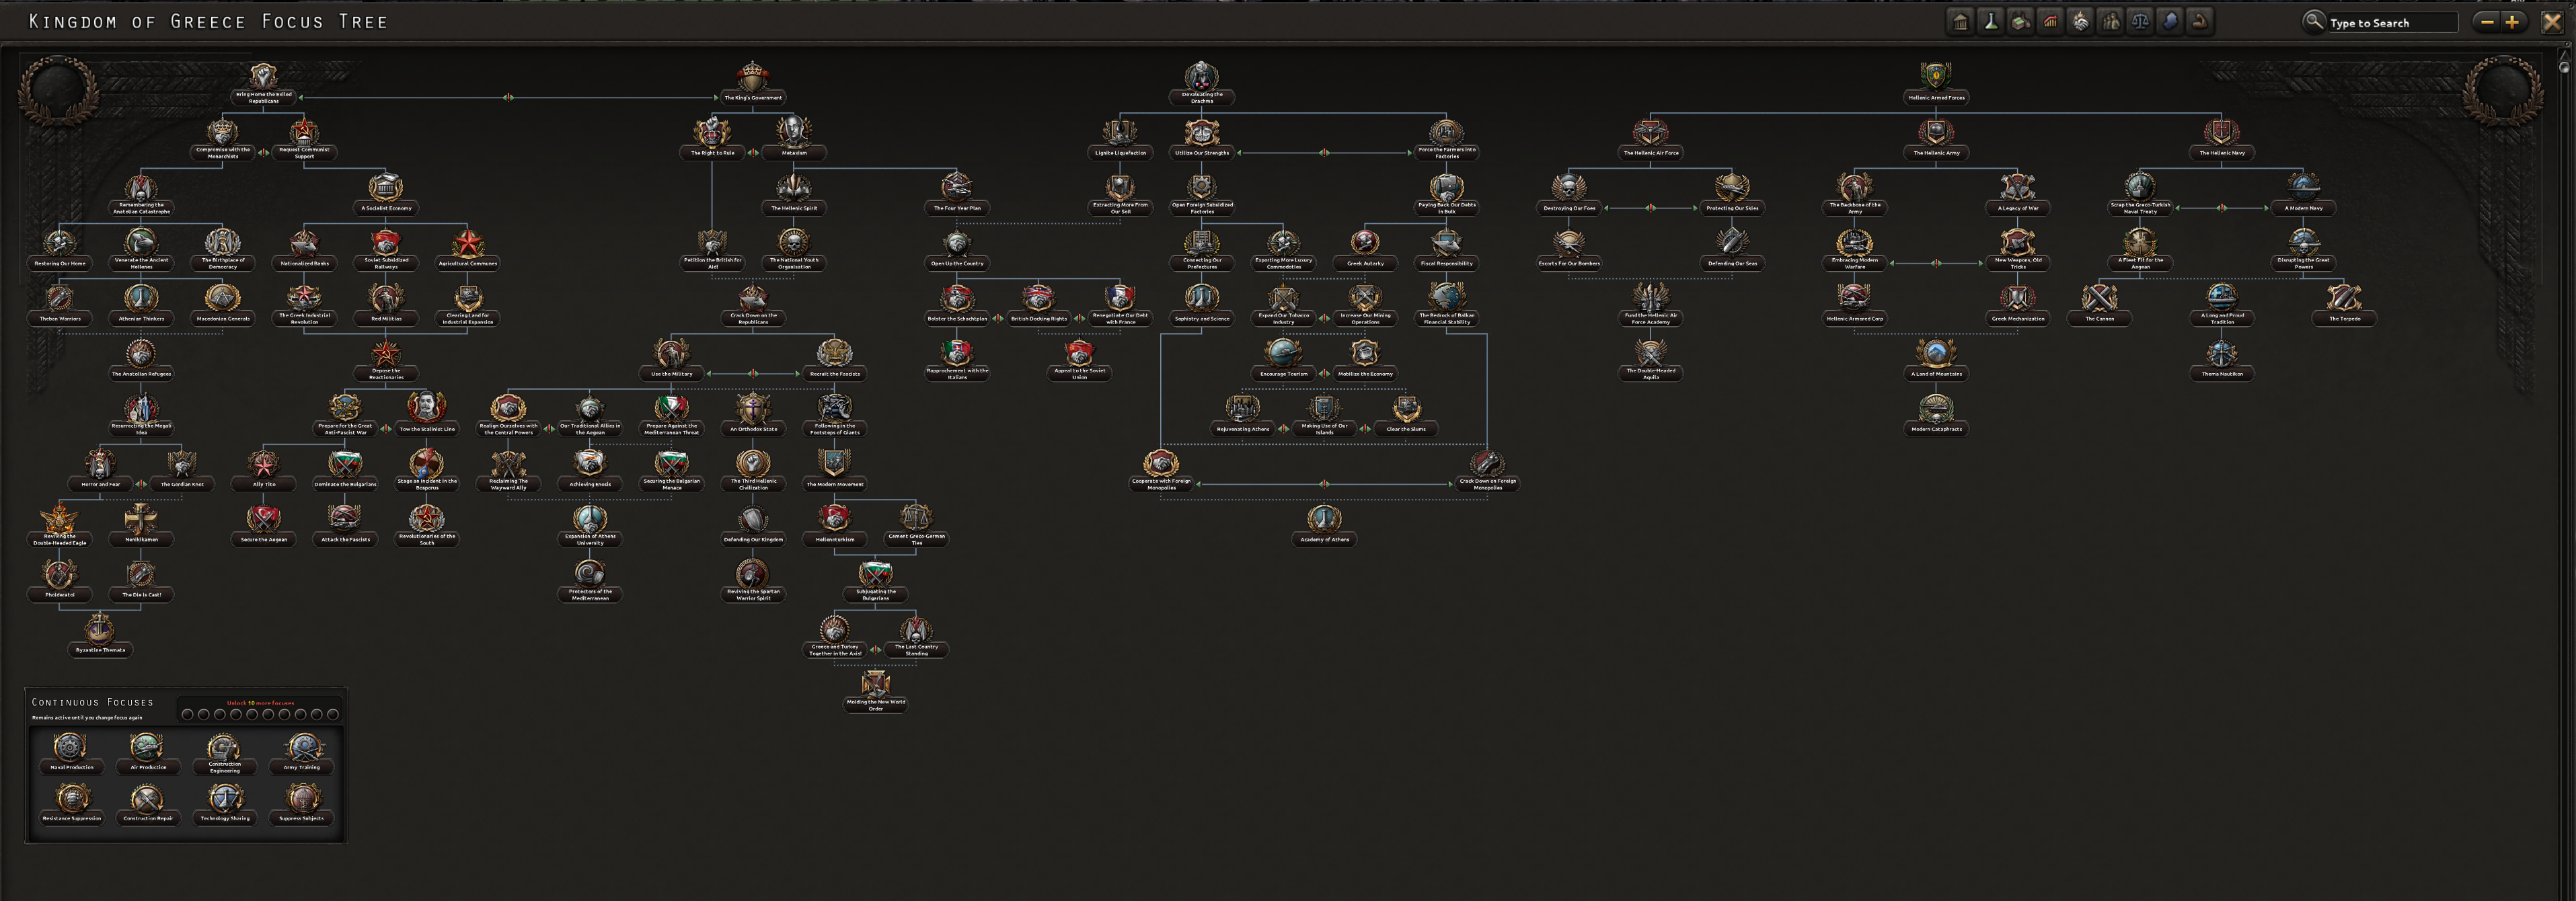 FULL FOCUS TREE VIEW.png